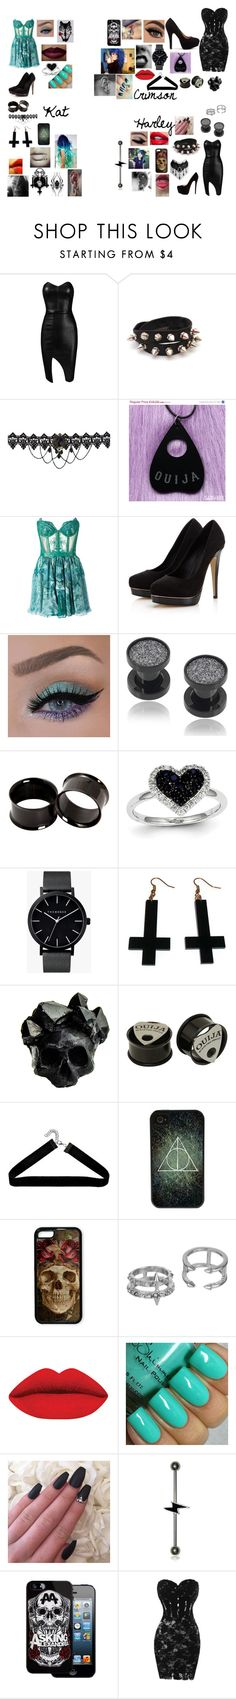 """Fancy Dinner"" by kat-cain on Polyvore featuring Posh Girl, Christian Louboutin, Kristian Aadnevik, Lipsy, Kevin Jewelers, The Horse, Chicnova Fashion, Macabre Gadgets, Boohoo and CellPowerCases"